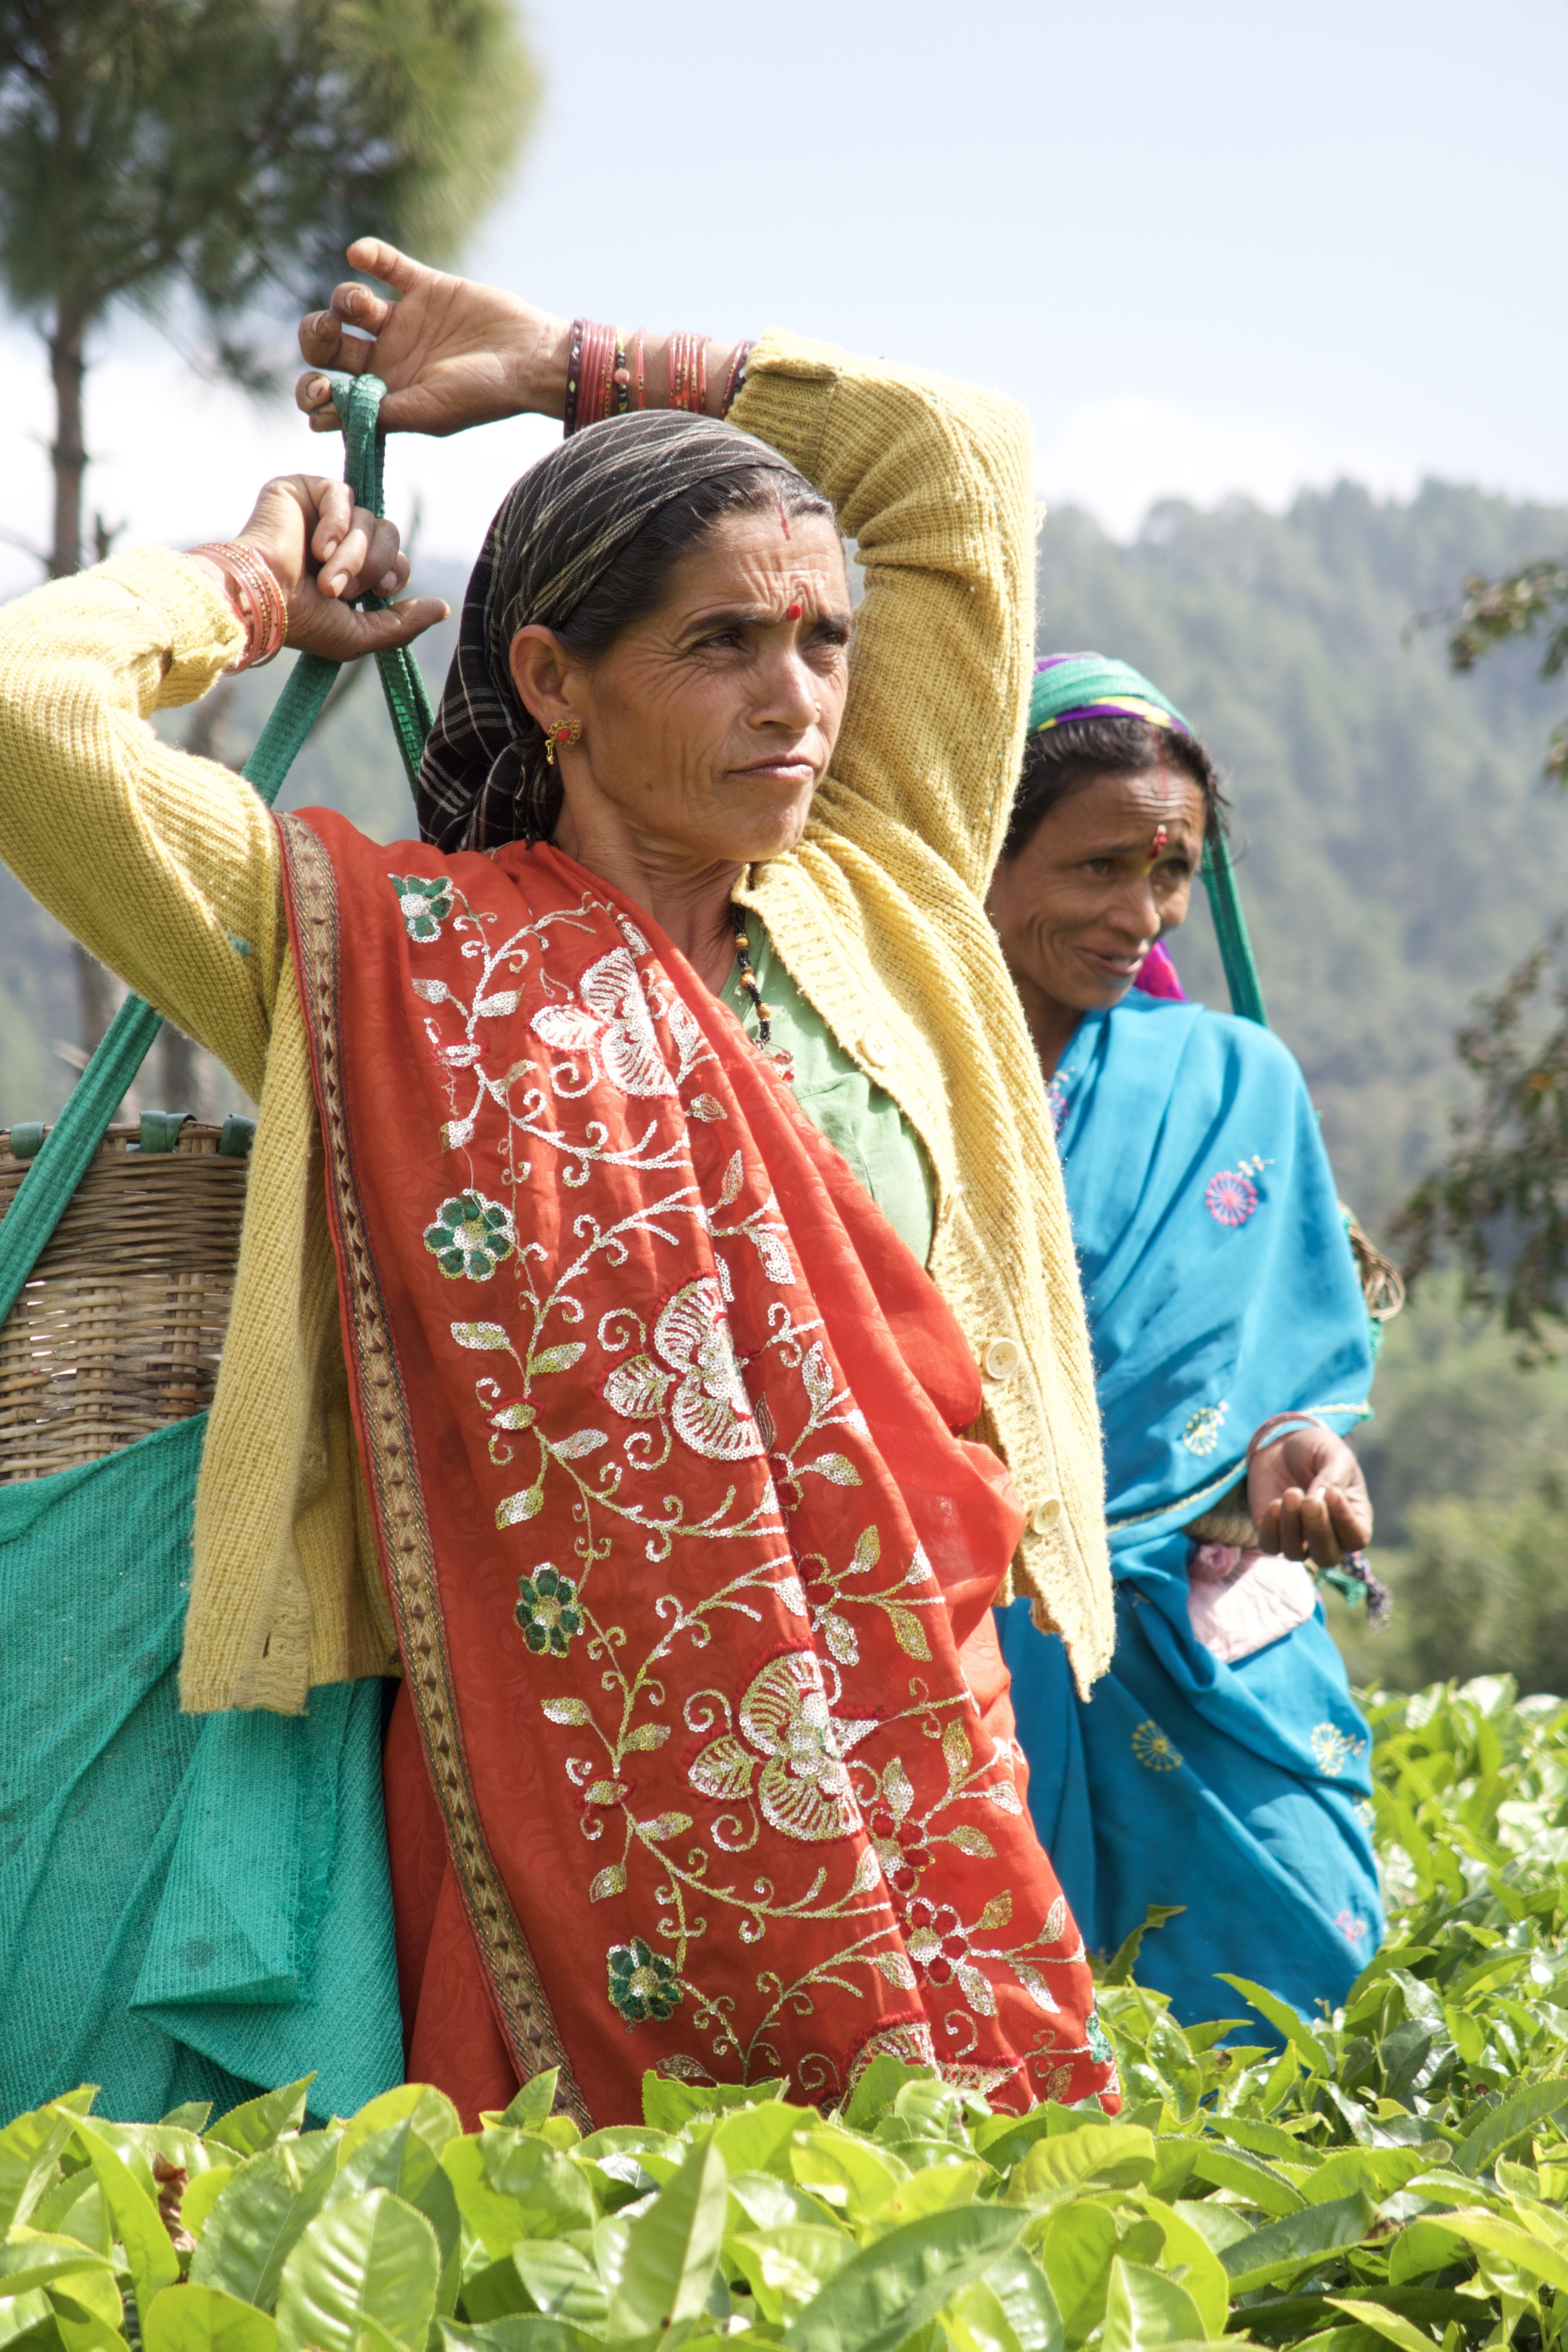 Woman carrying basket of tea leaves in India in Kumaon Tea Region